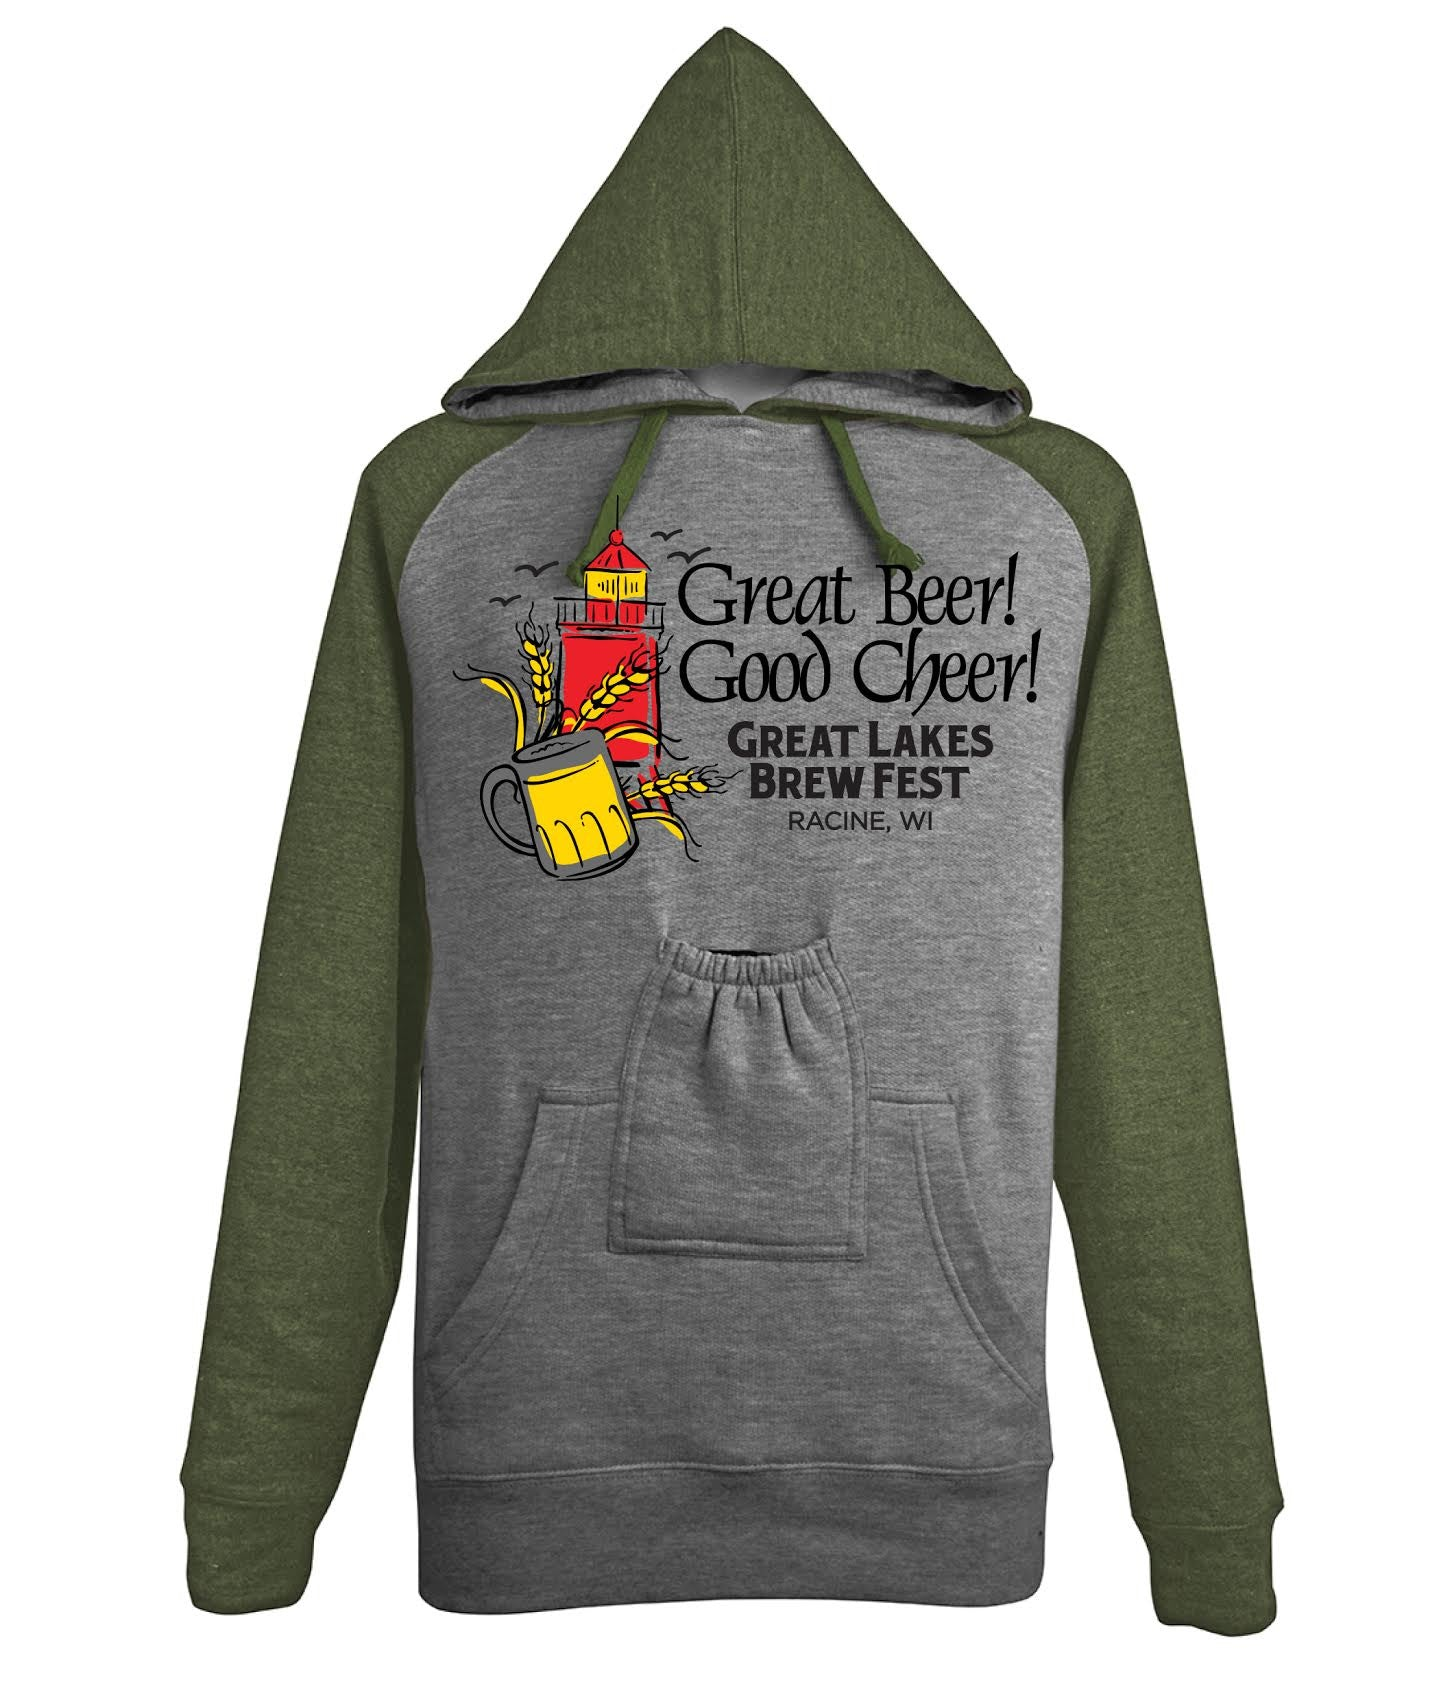 GLBF Hoody with Bottle Pouch (M only)